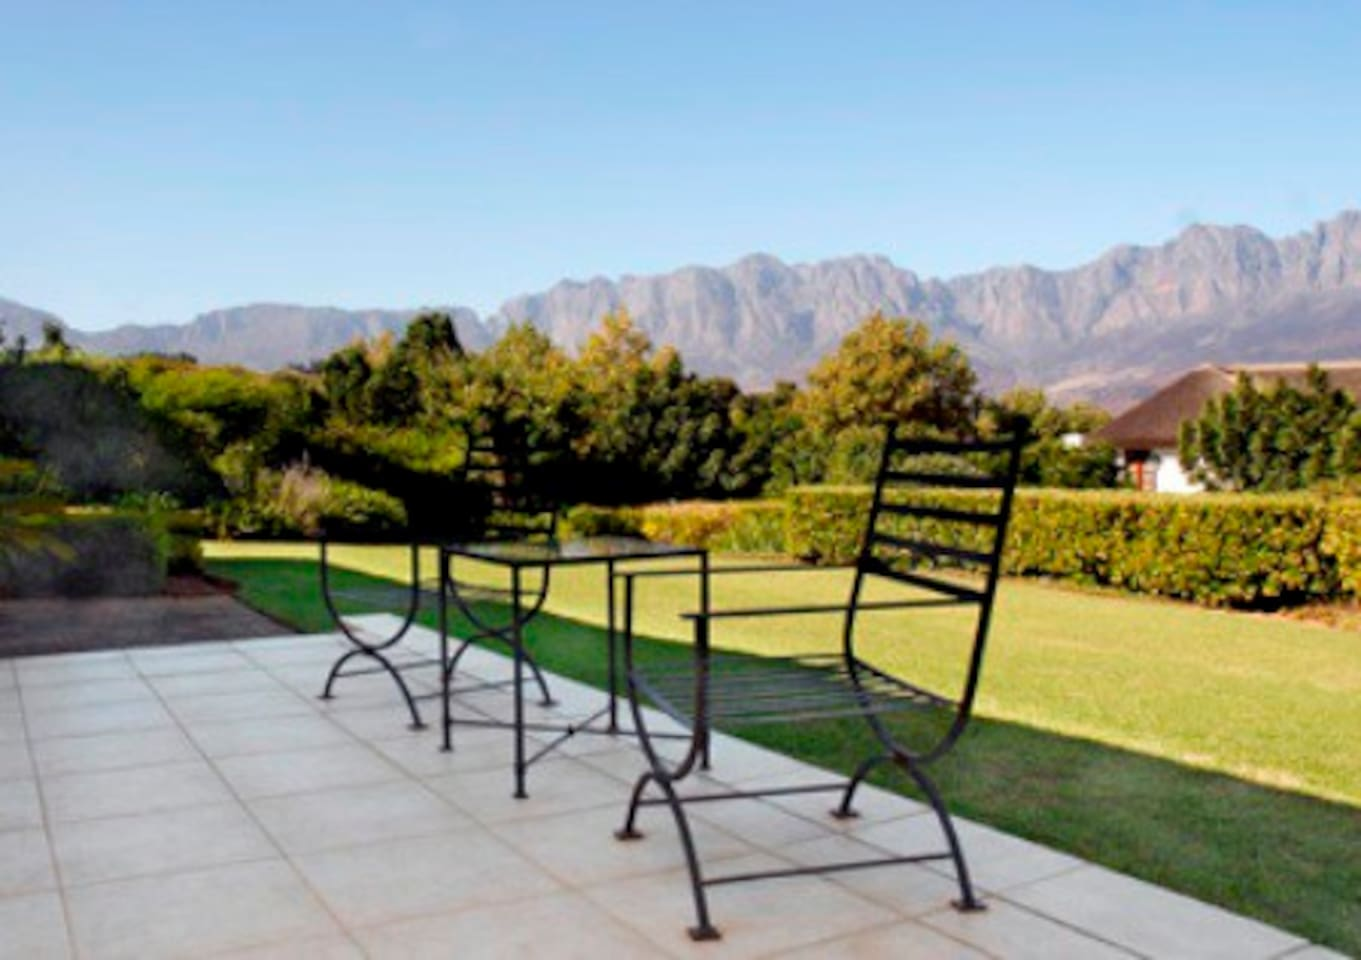 Second Patio:  view of Hottentot Hollands Mountain Range